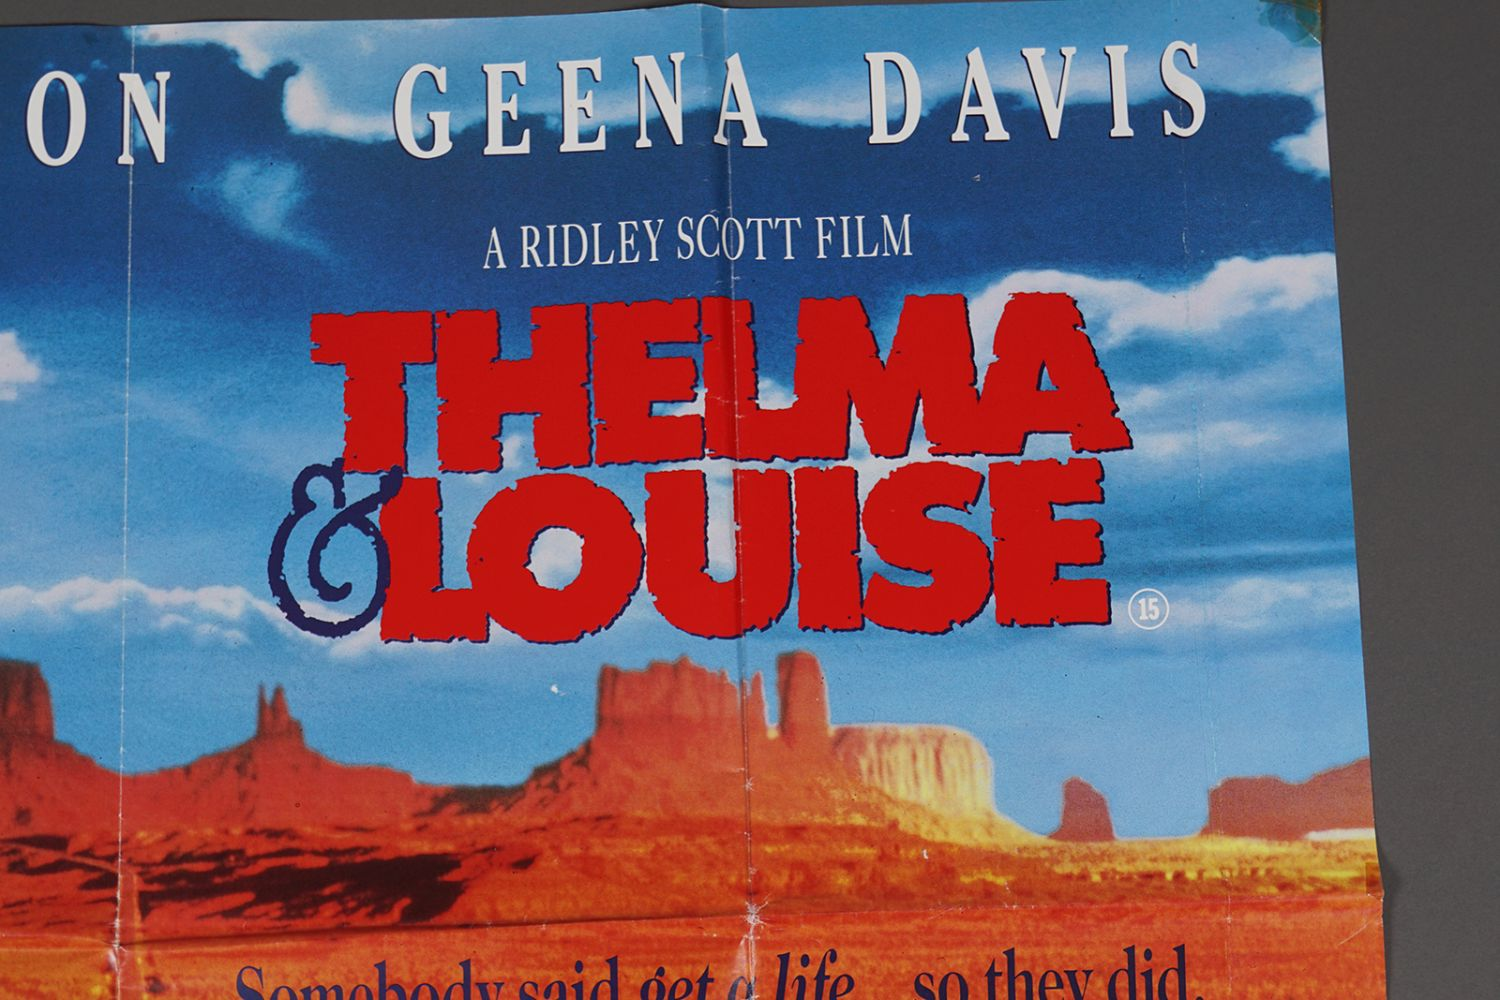 THELMA & LOUISE - Image 5 of 5